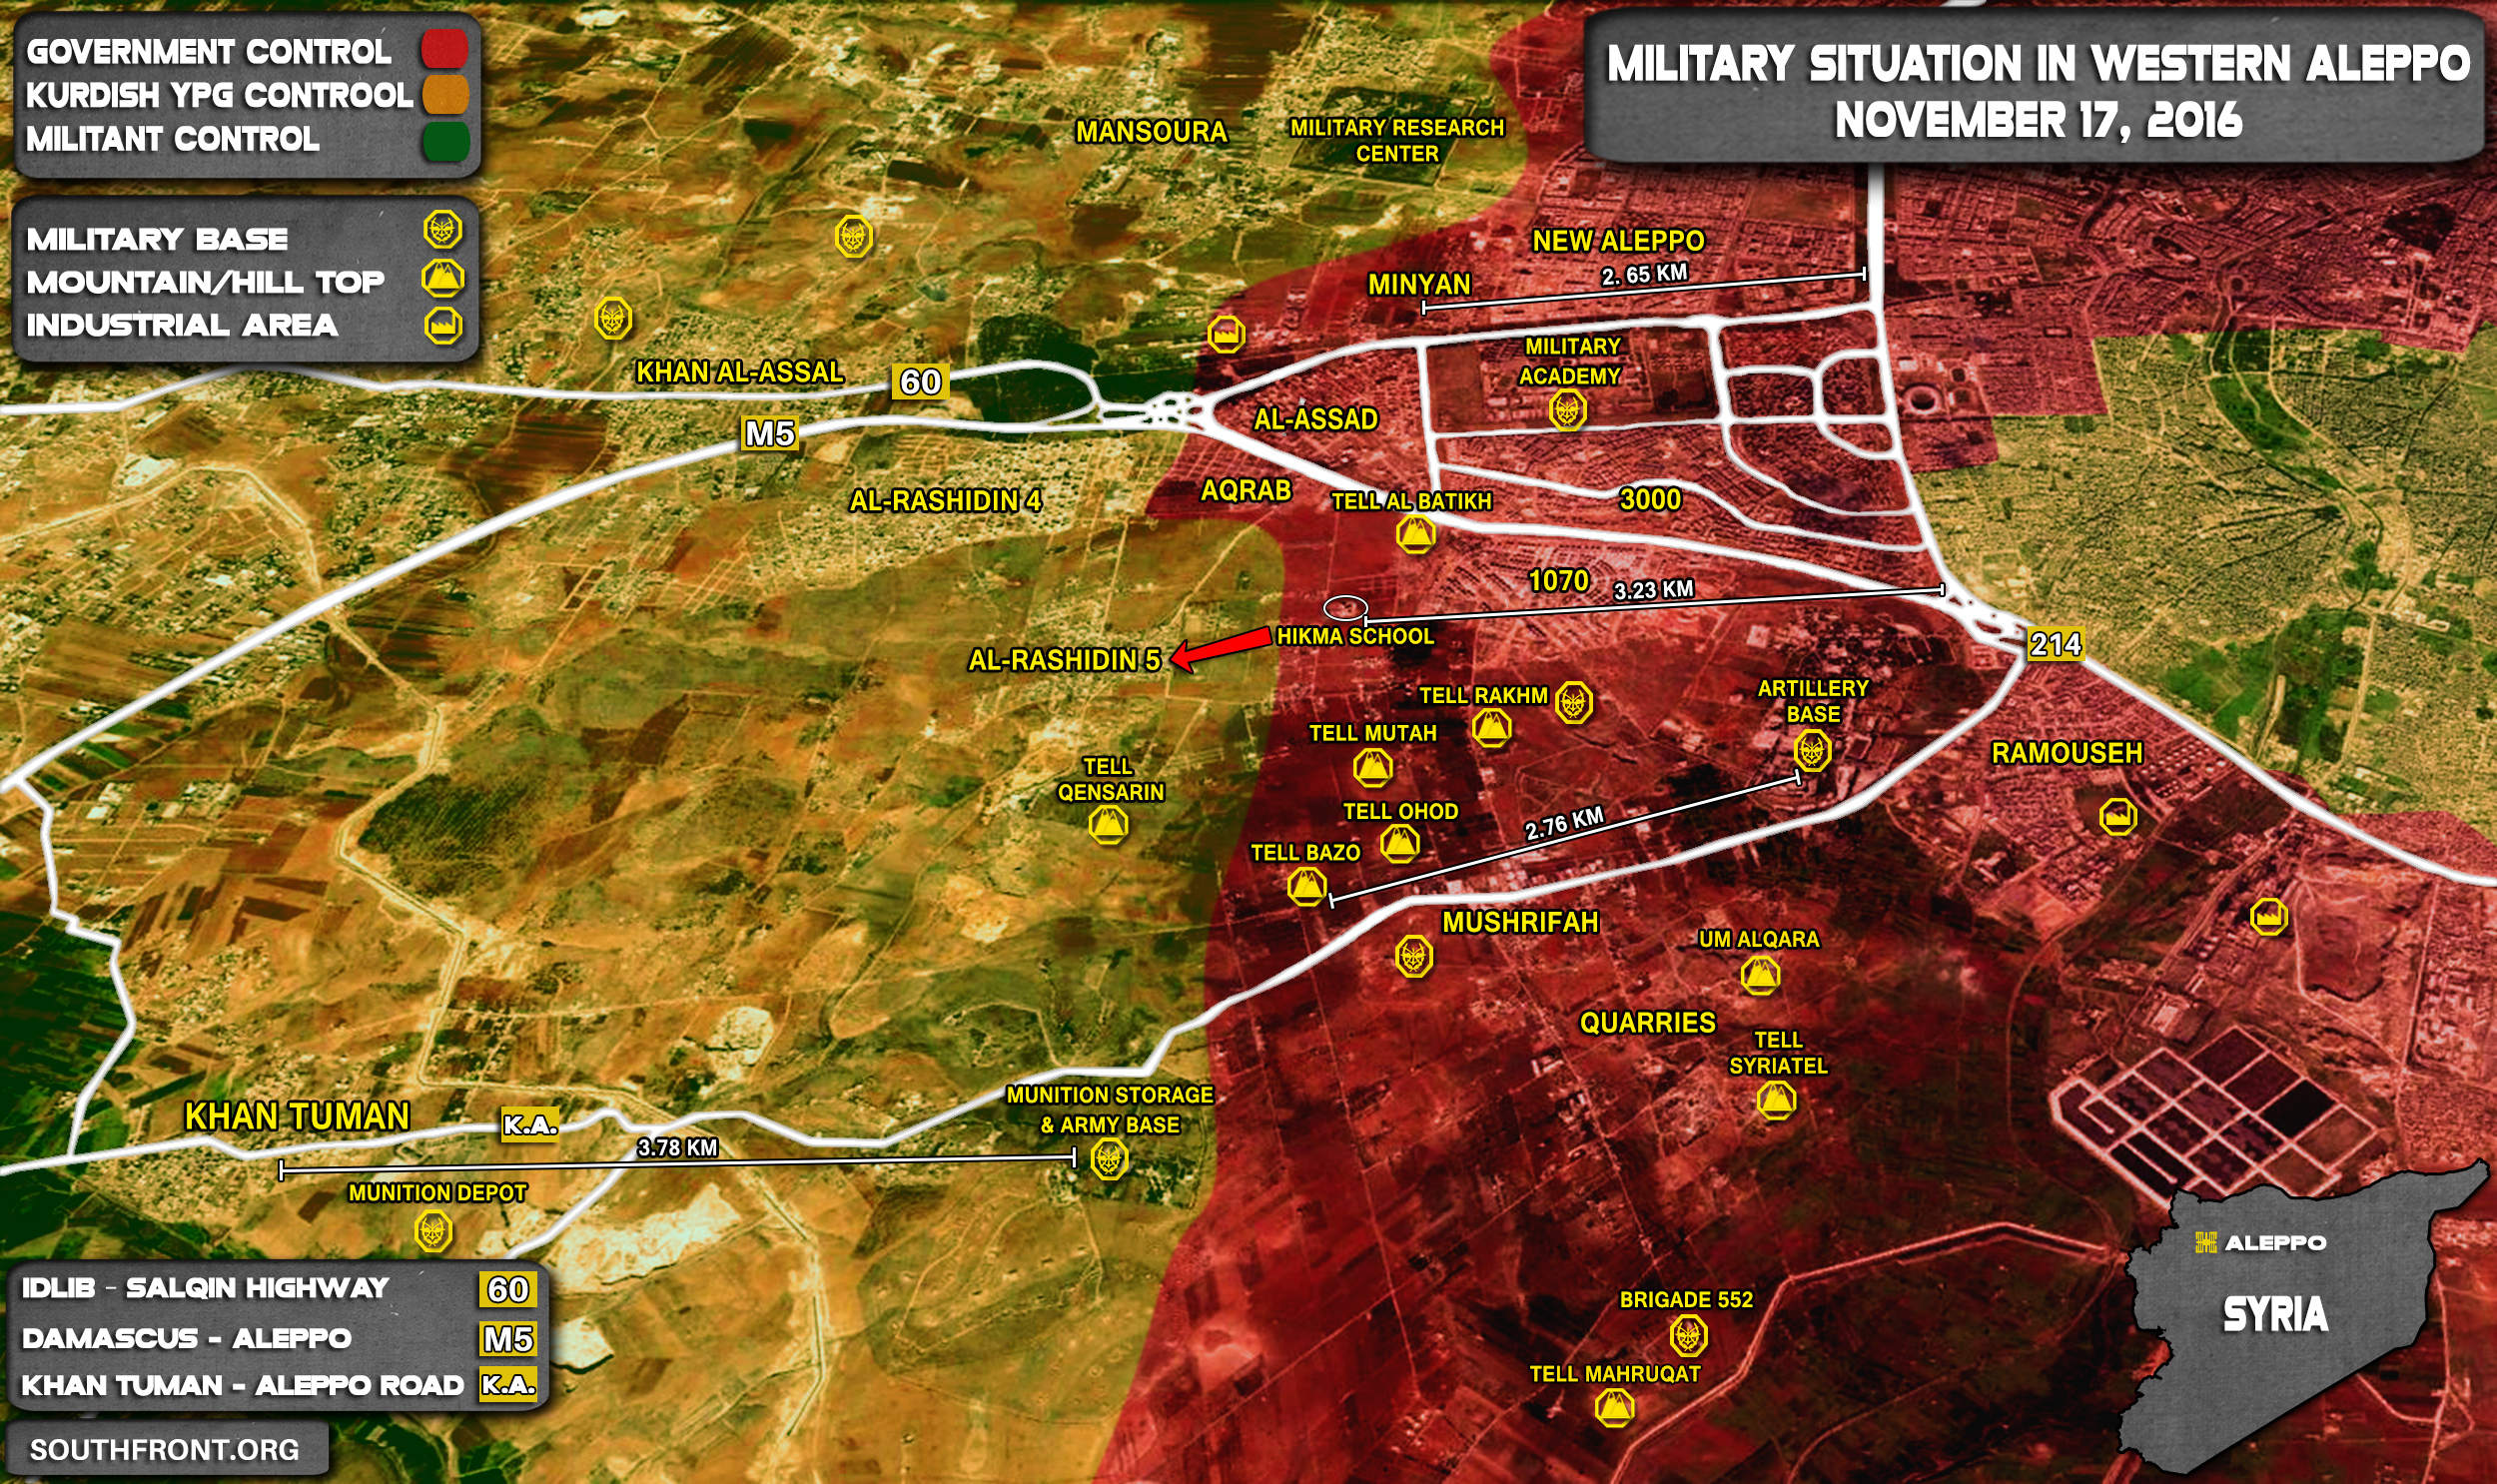 Overview of Military Situation in Aleppo City on November 17, 2016